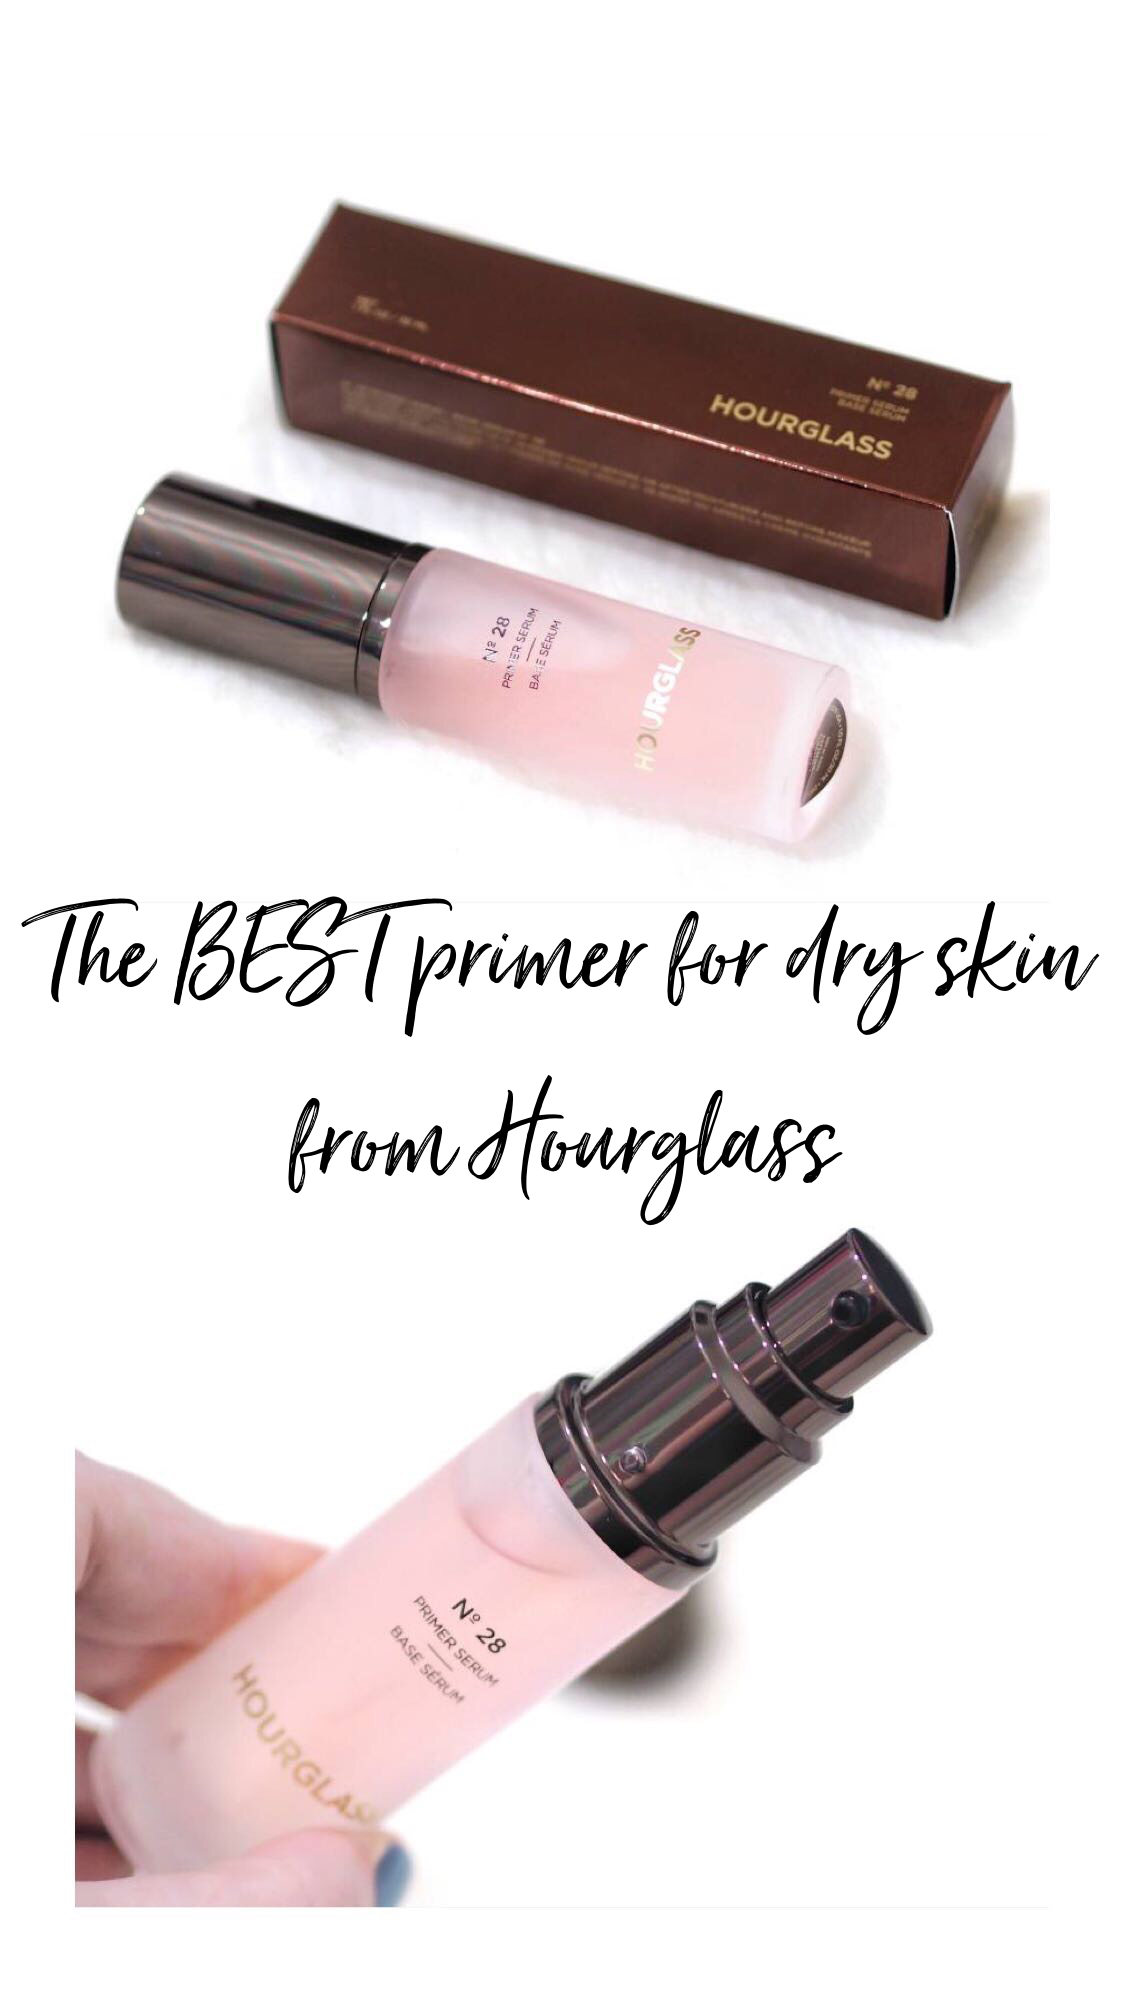 Hourglass No 28 Primer Serum Review is it worth the hype